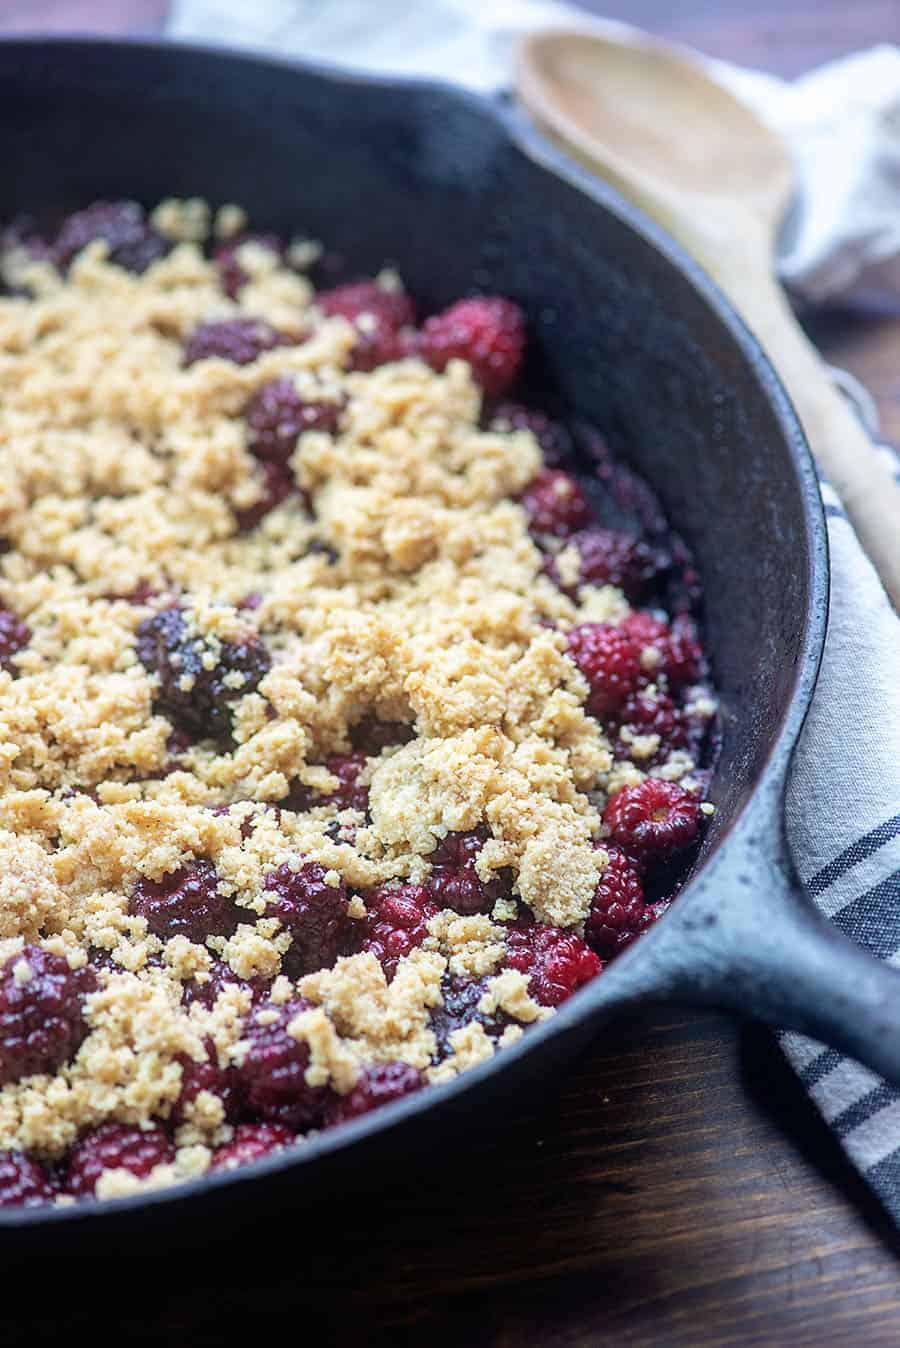 Low carb and keto blackberry cobbler! The cobbler topping is so easy too! #cobbler #blackberry #lowcarb #keto